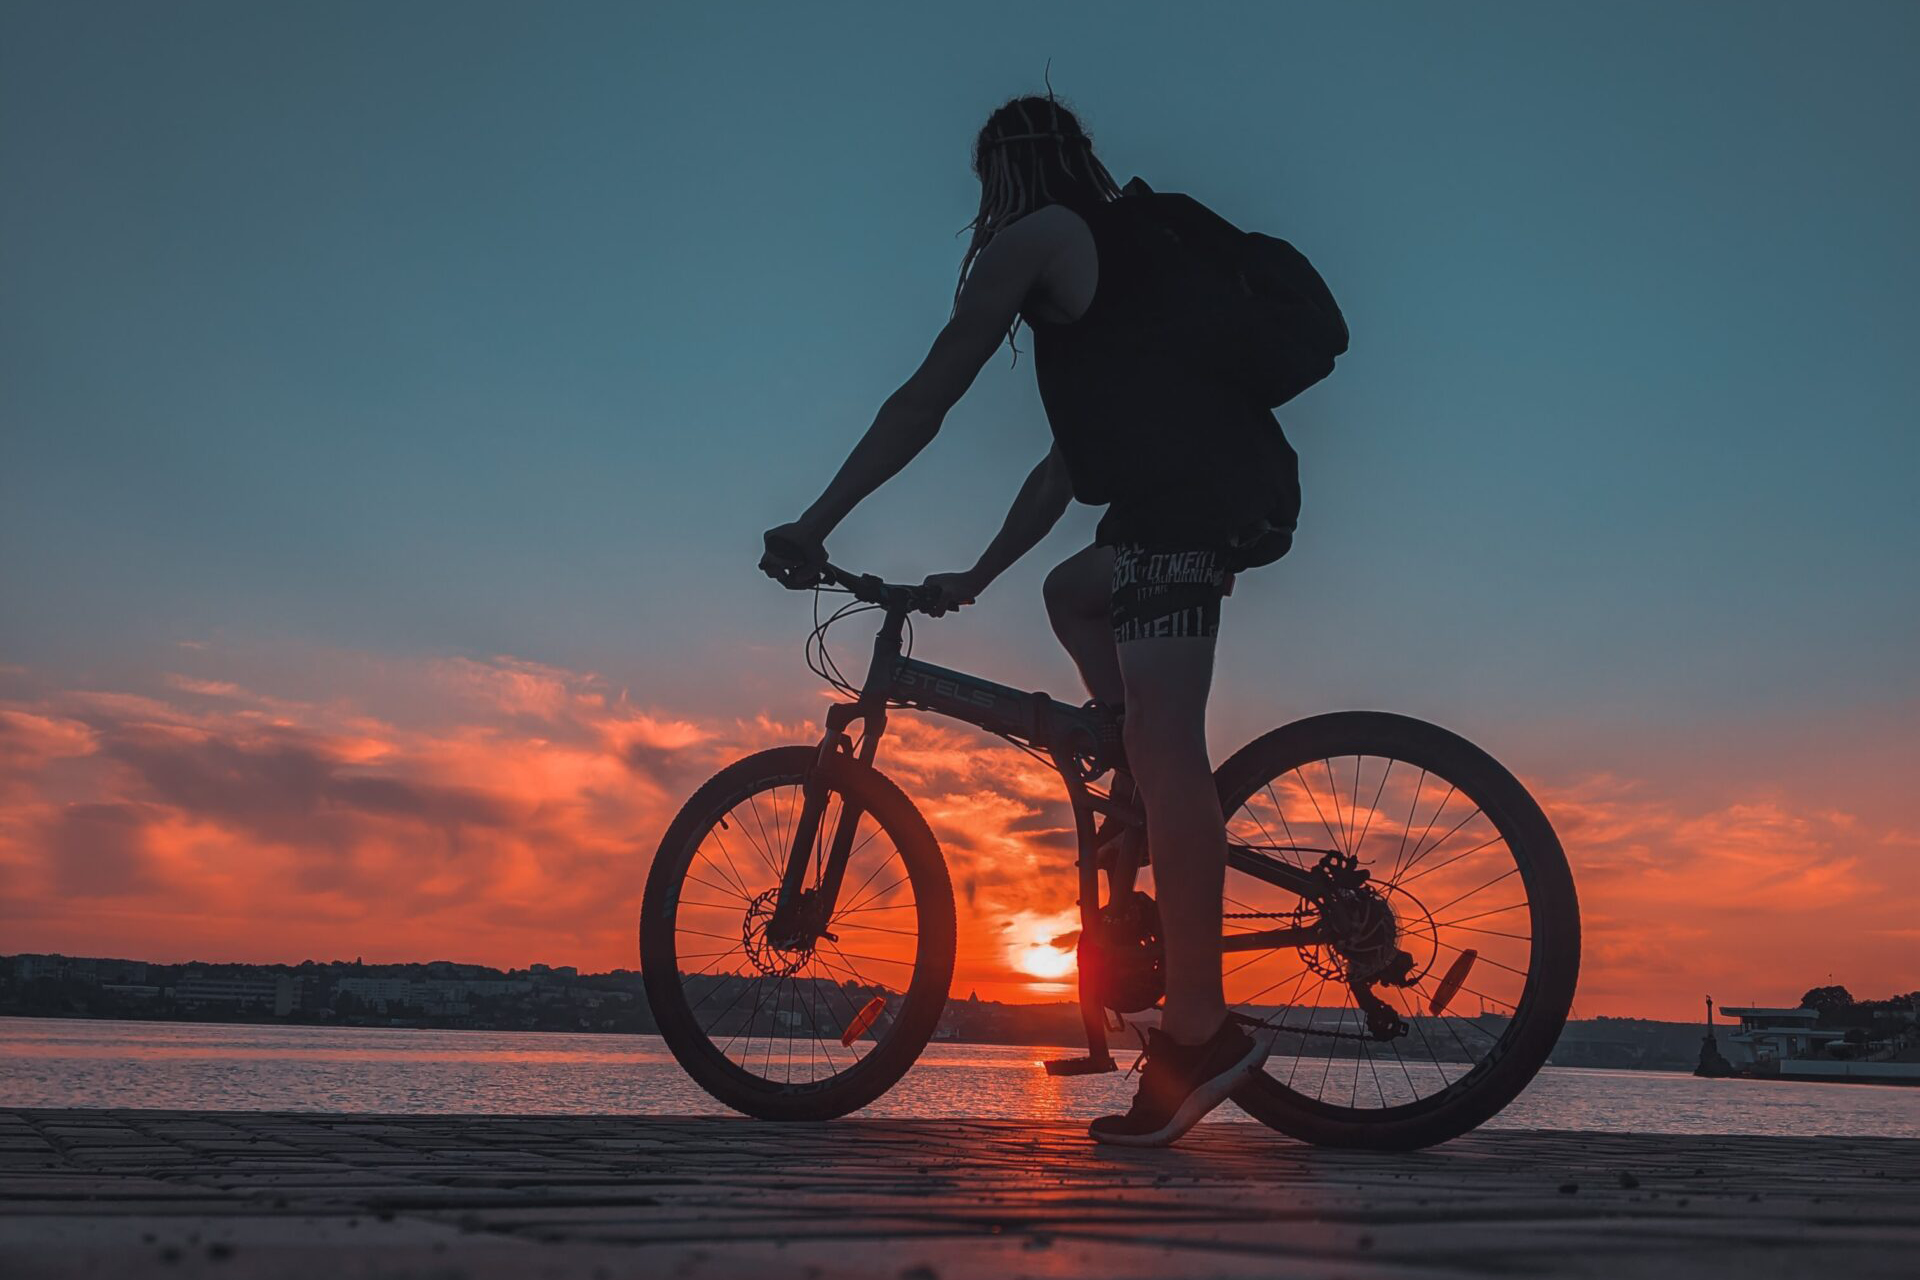 A biker in front of the sea during the sunset, city on the background, beautiful sunset